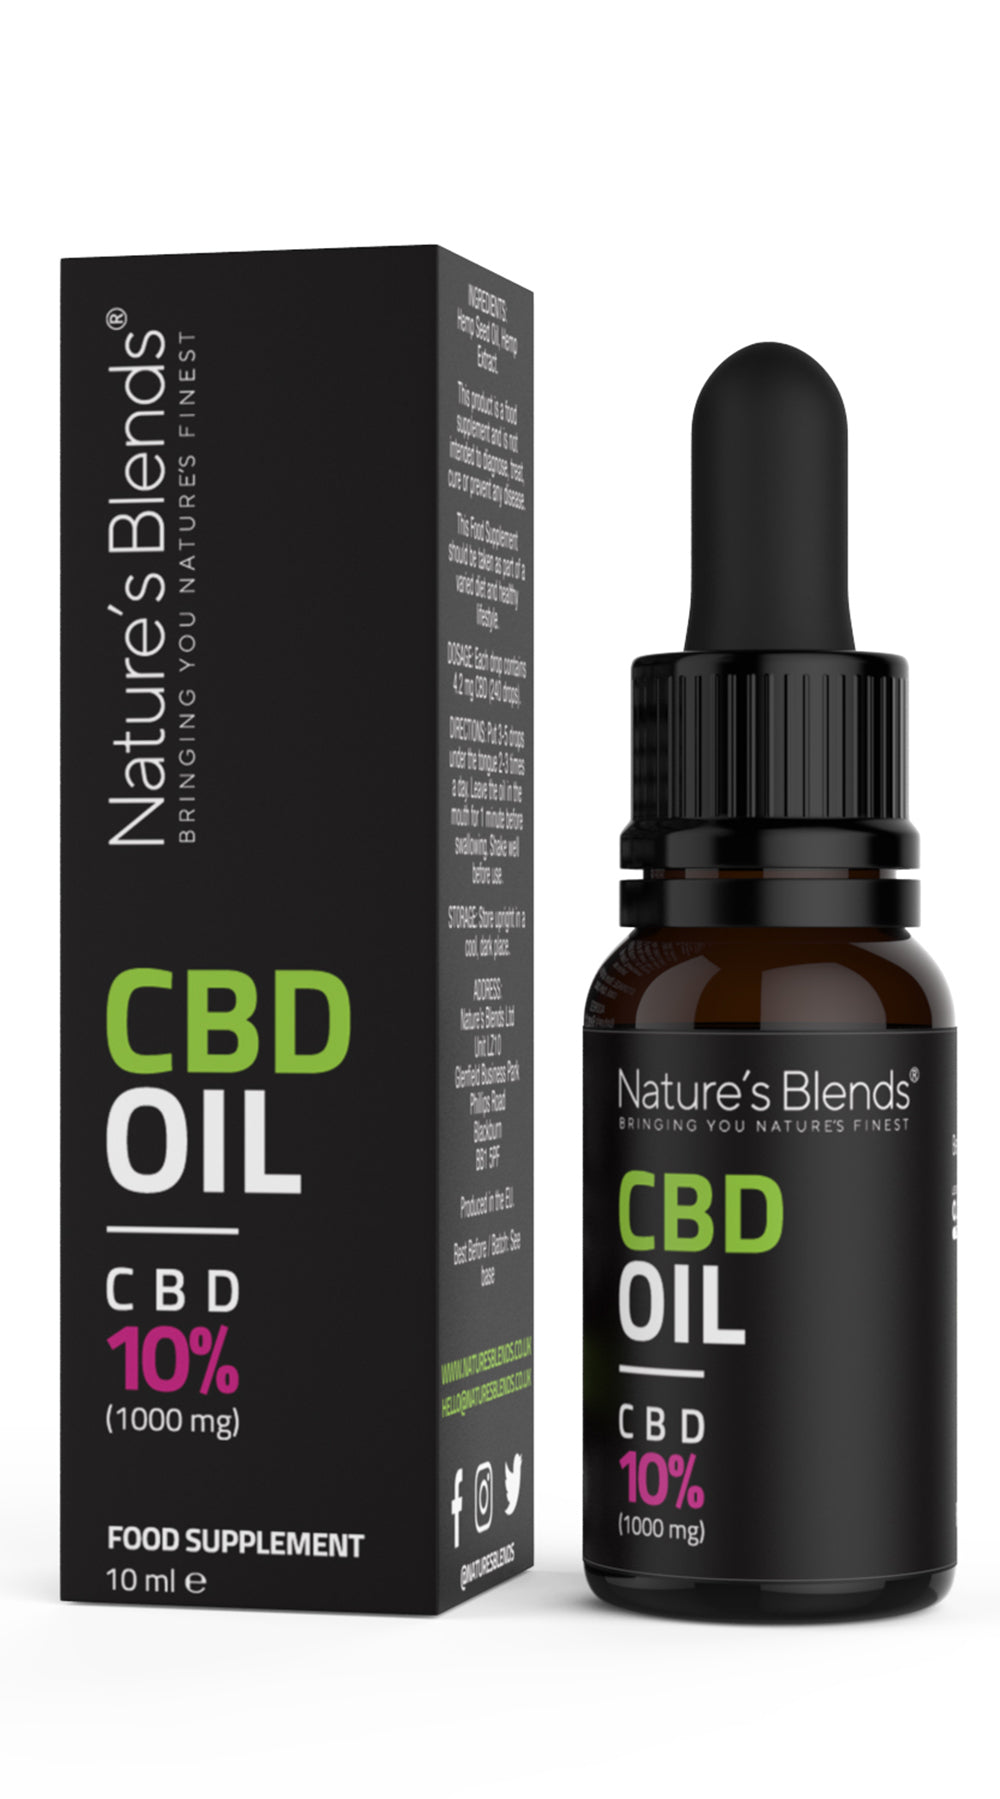 a bottle of 1000mg cbd oil along with natures blends packaging